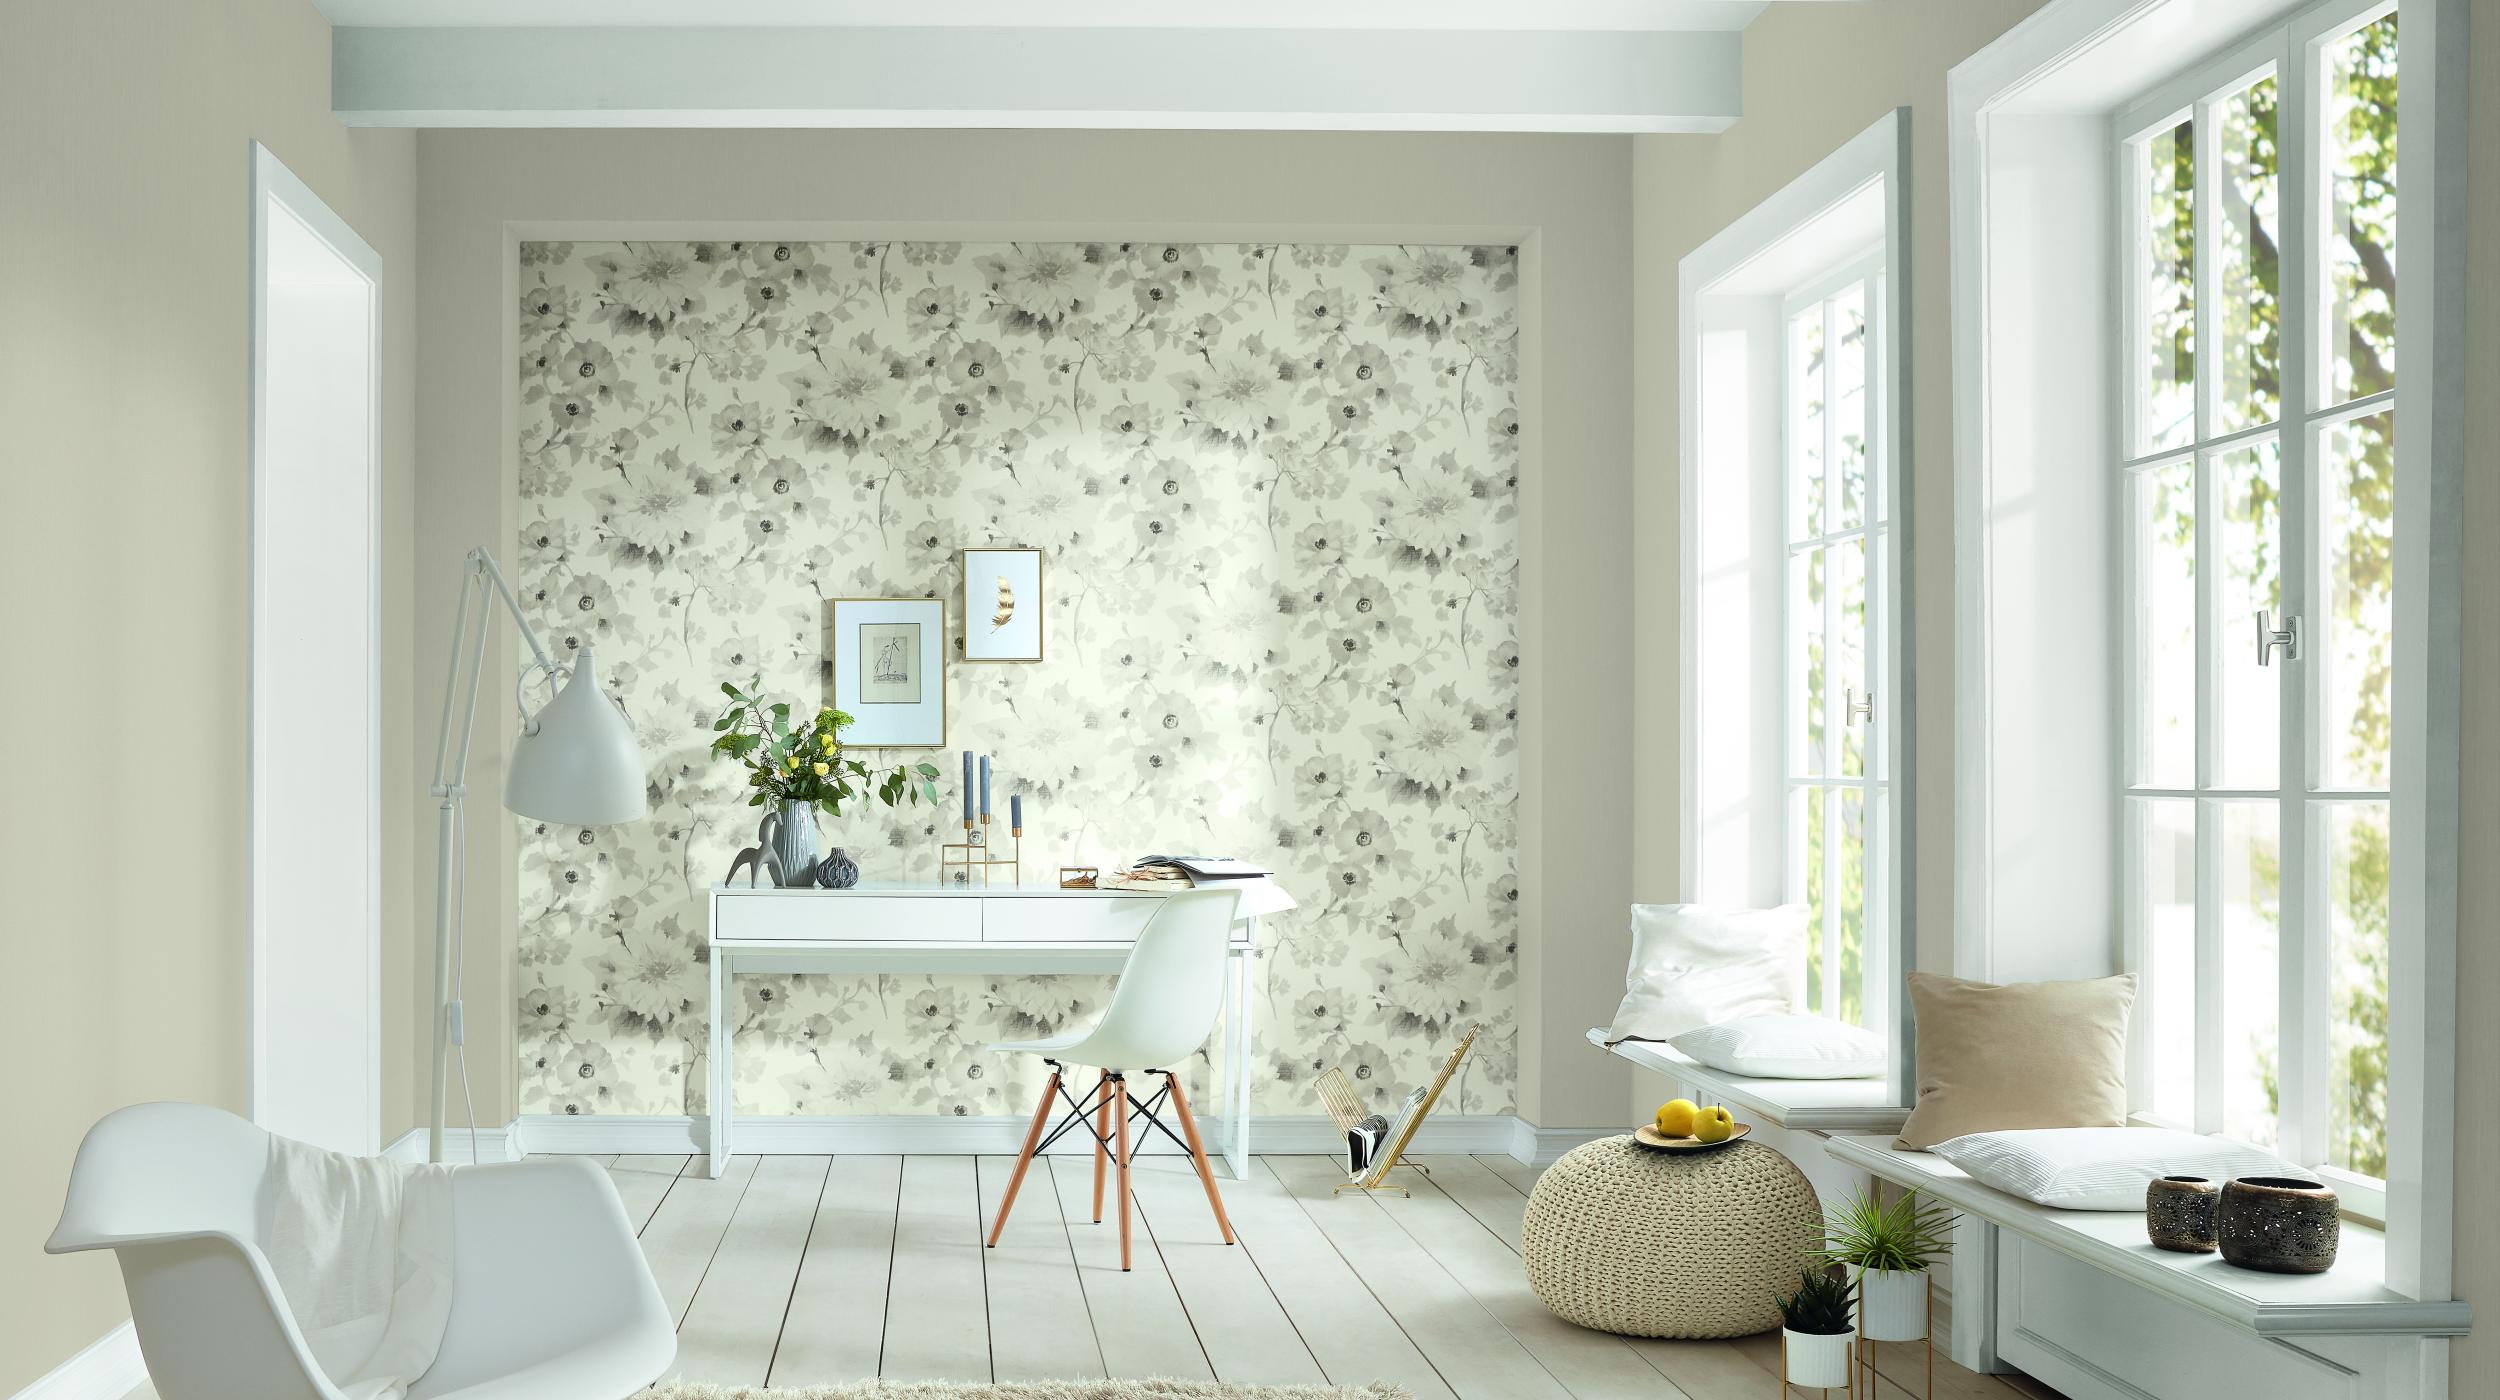 Фото обои Fashion for Walls  Erismann